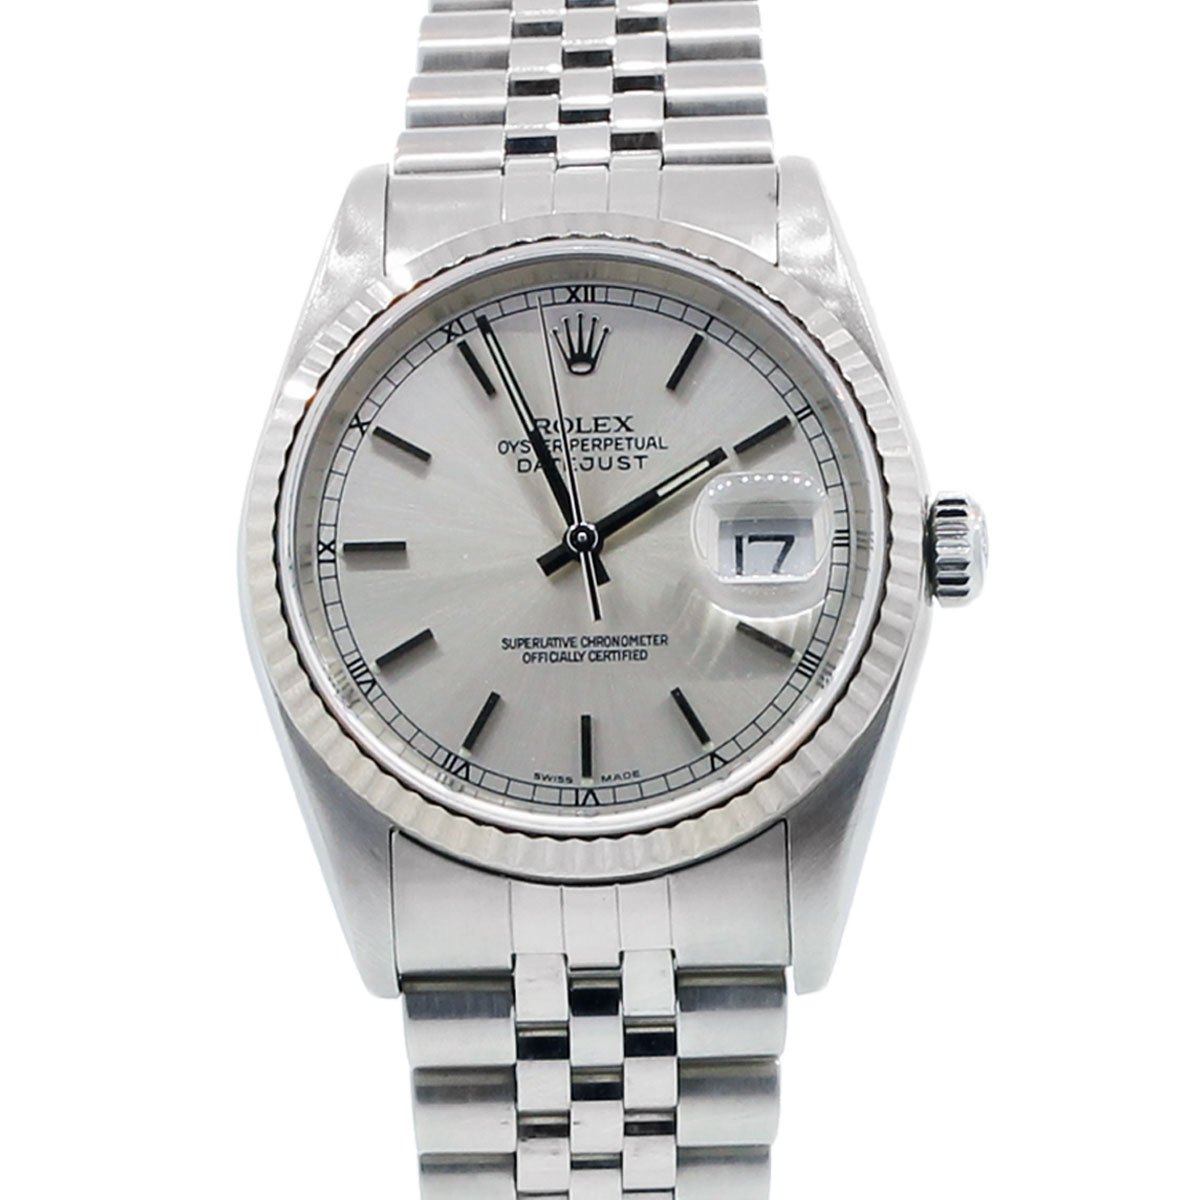 Rolex datejust oyster perpetual 16234 jubilee watch for Jubilee watch